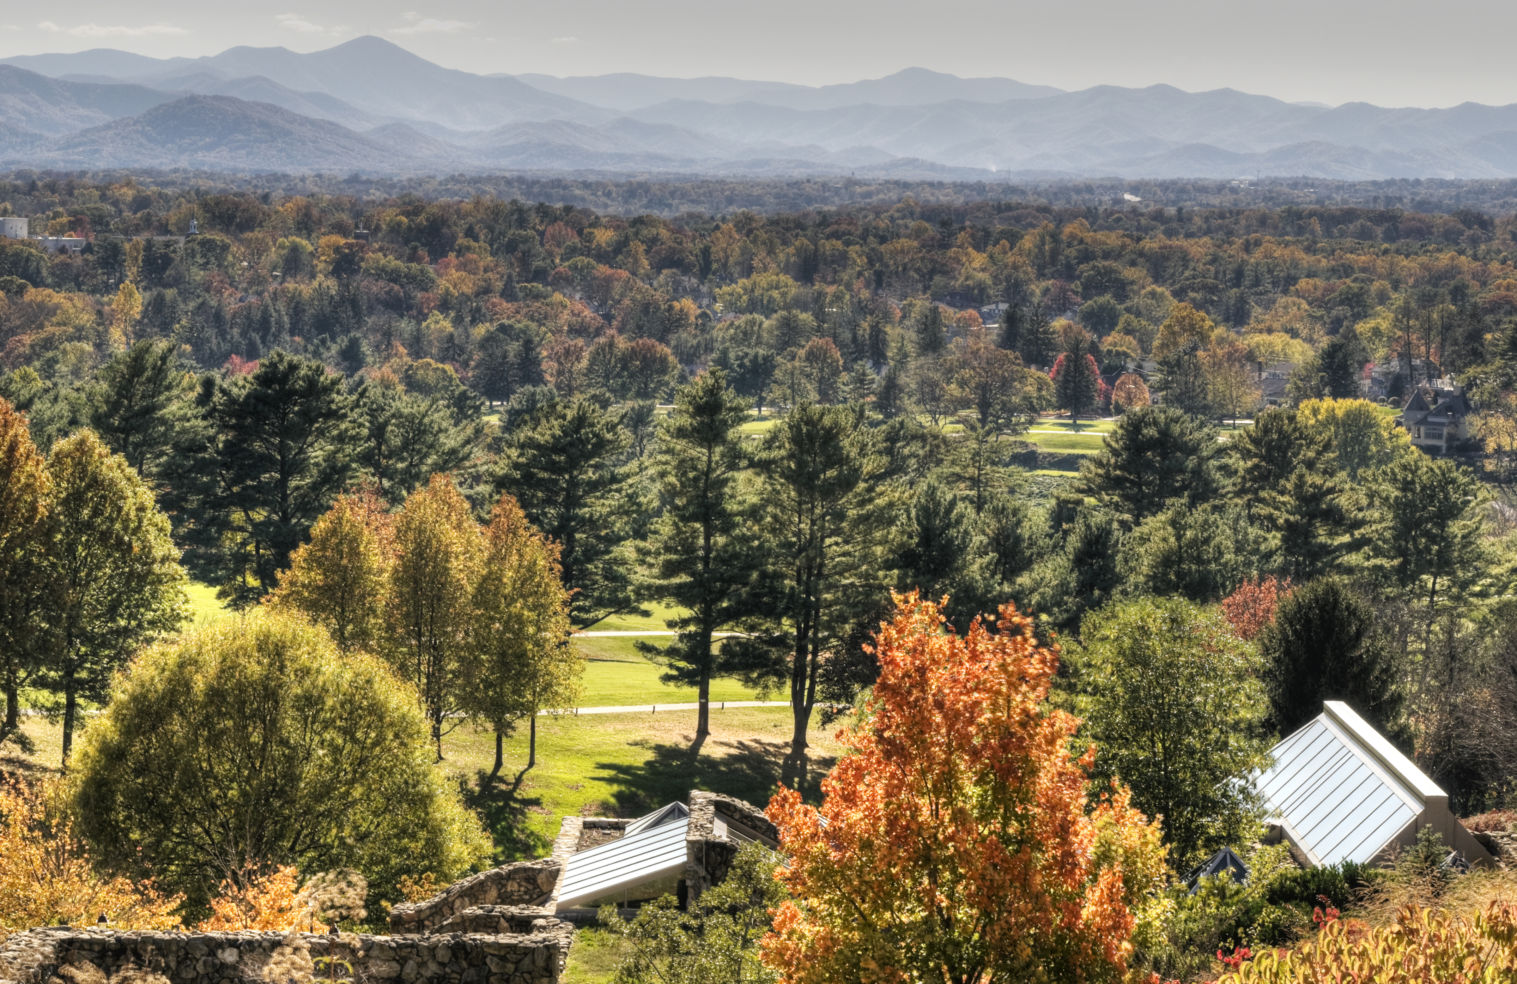 American_Drives_Blue-Ridge-Parkway_Asheville_autumn